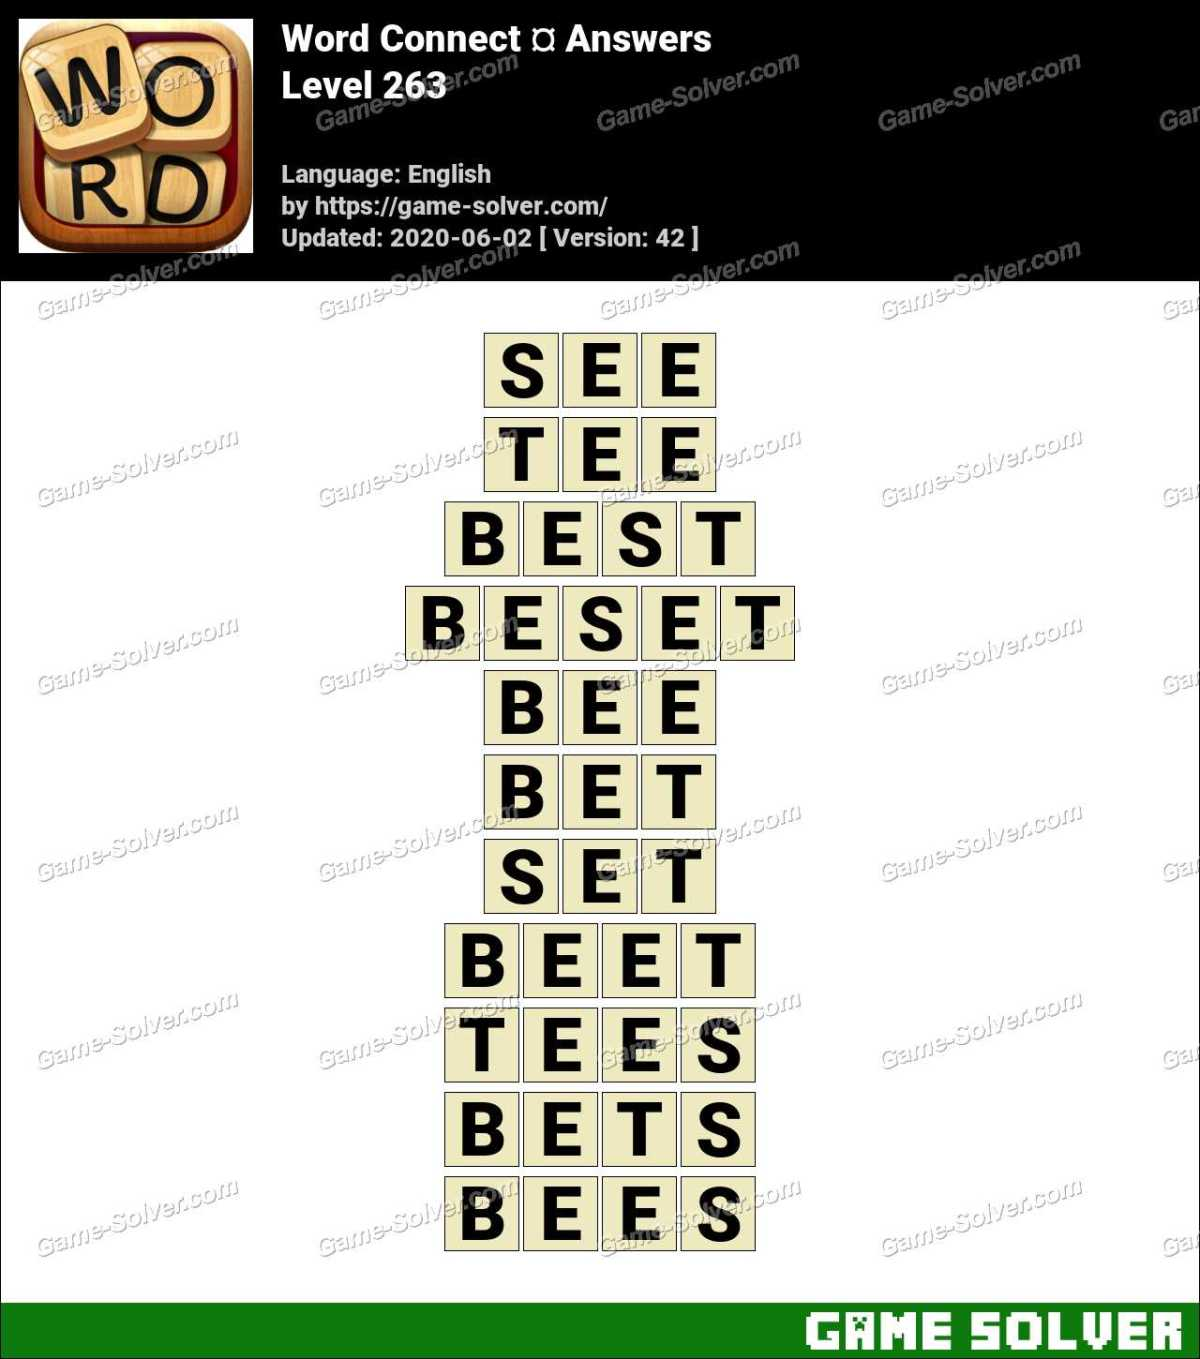 Word Connect Level 263 Answers